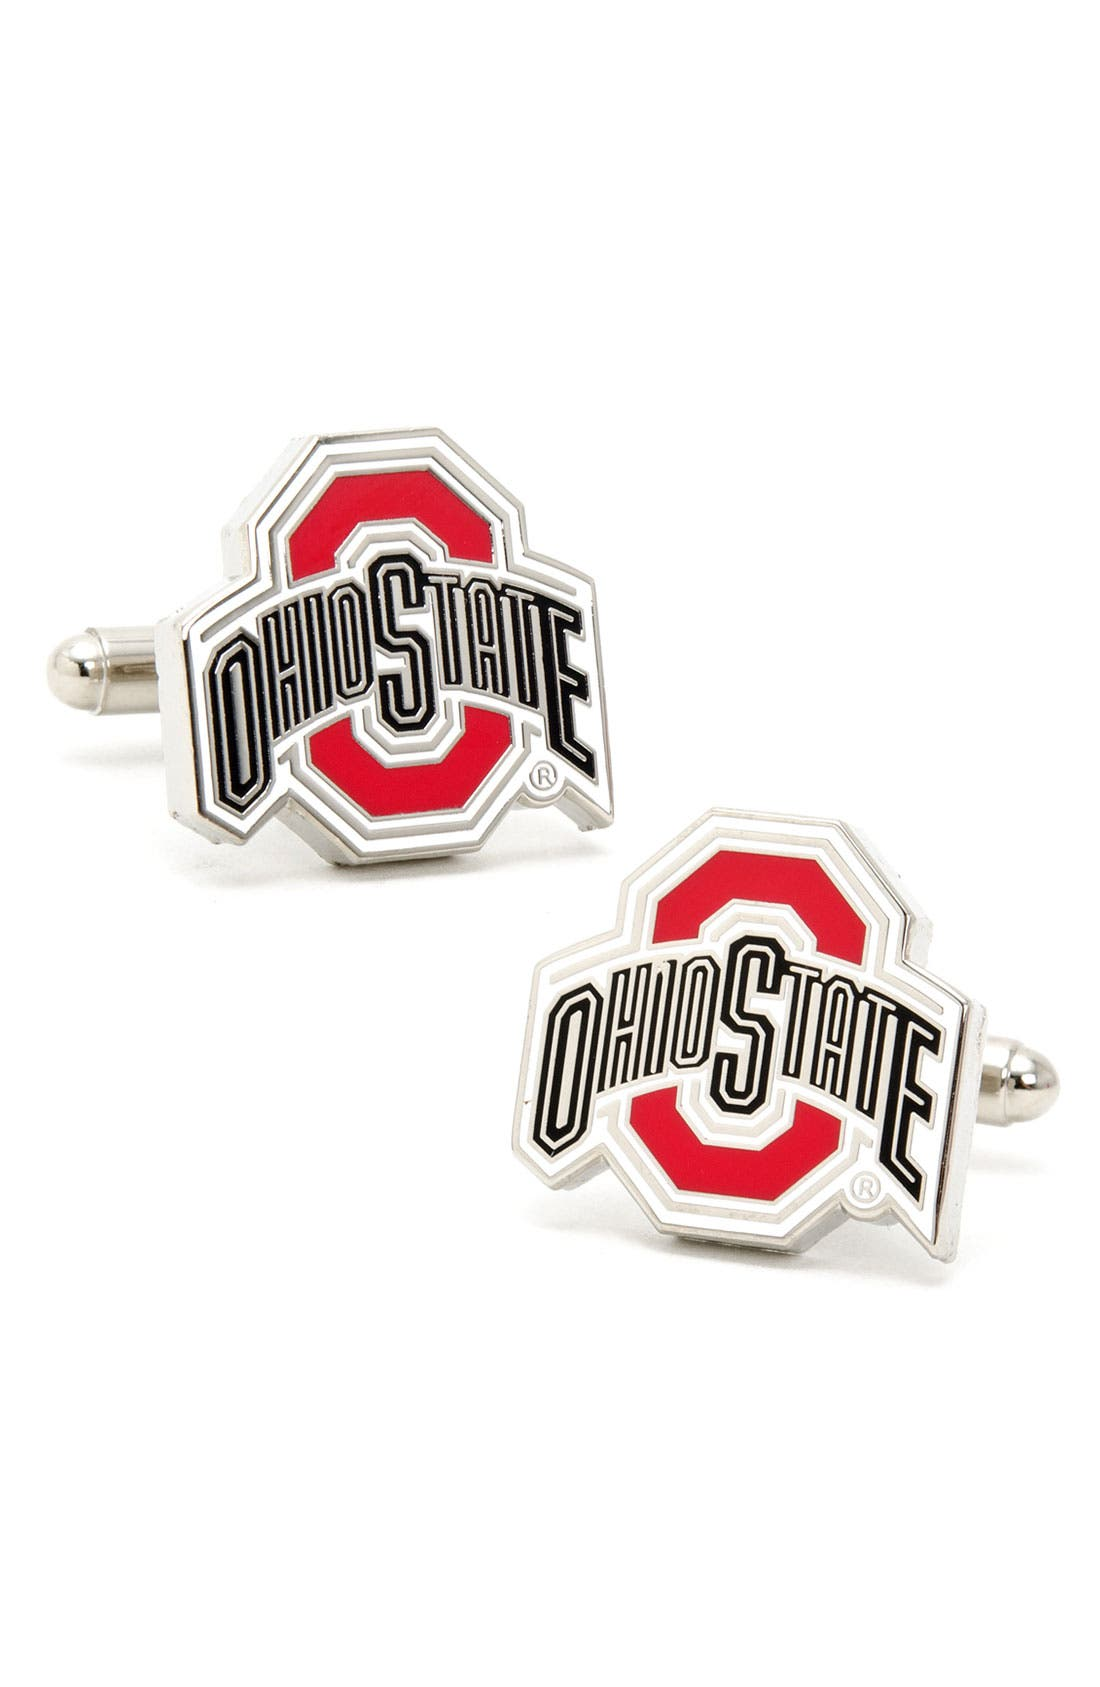 'Ohio State Buckeyes' Cuff Links,                             Main thumbnail 1, color,                             RED/ BLACK/ WHITE